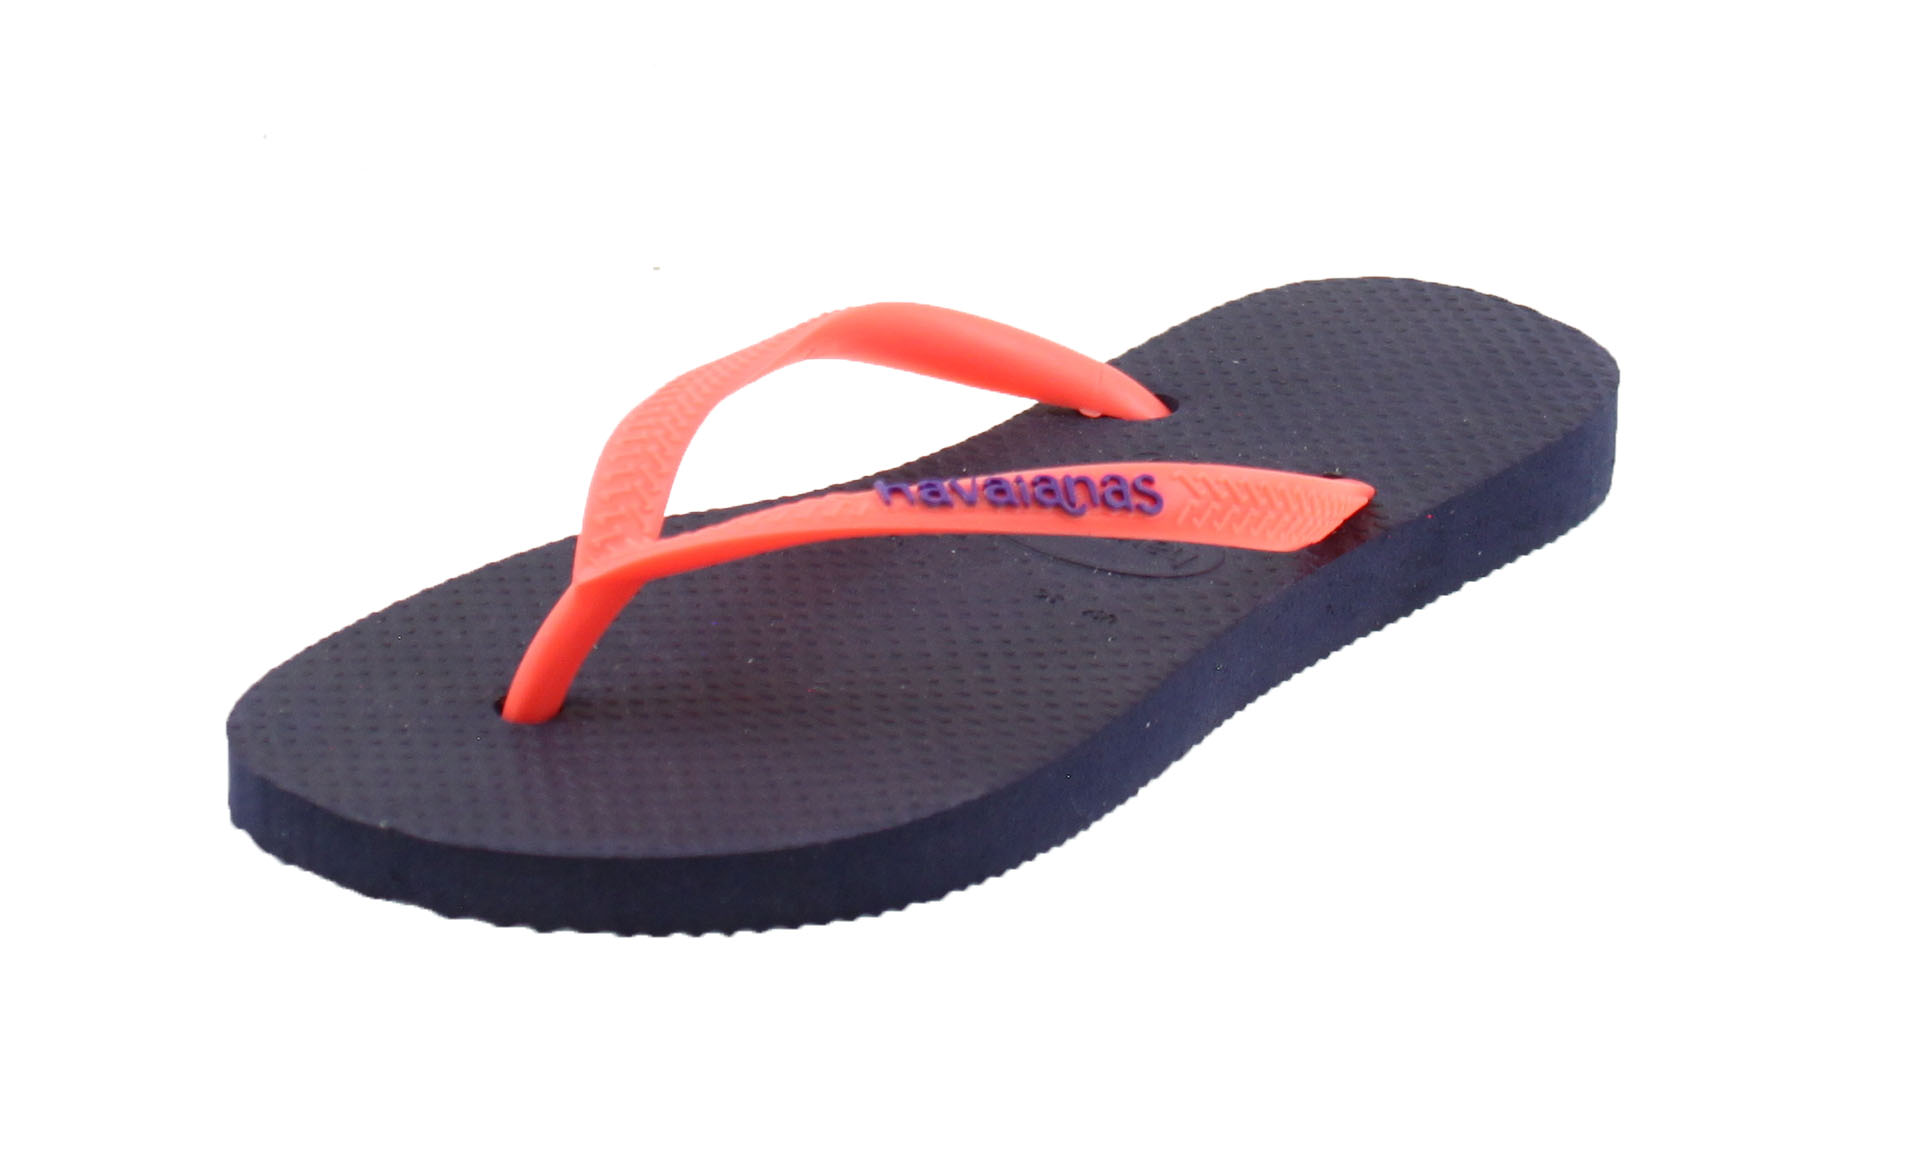 a63d268f87a Product afbeelding Product afbeelding Product afbeelding Product  afbeelding. Havaianas